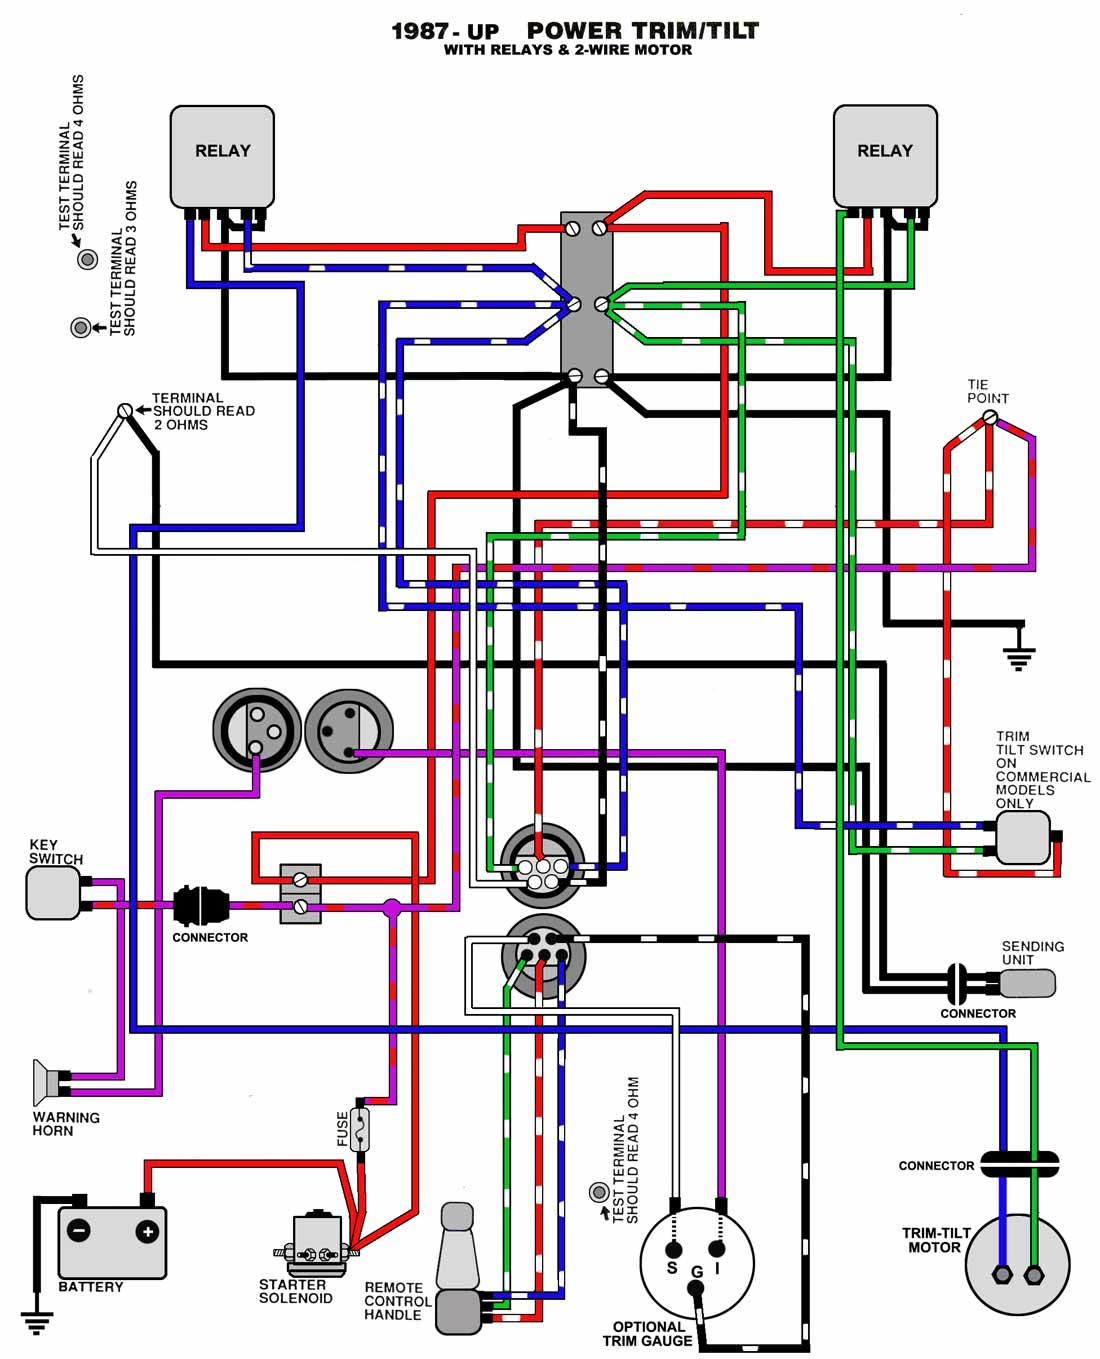 TnT_87_UP mastertech marine evinrude johnson outboard wiring diagrams  at mifinder.co